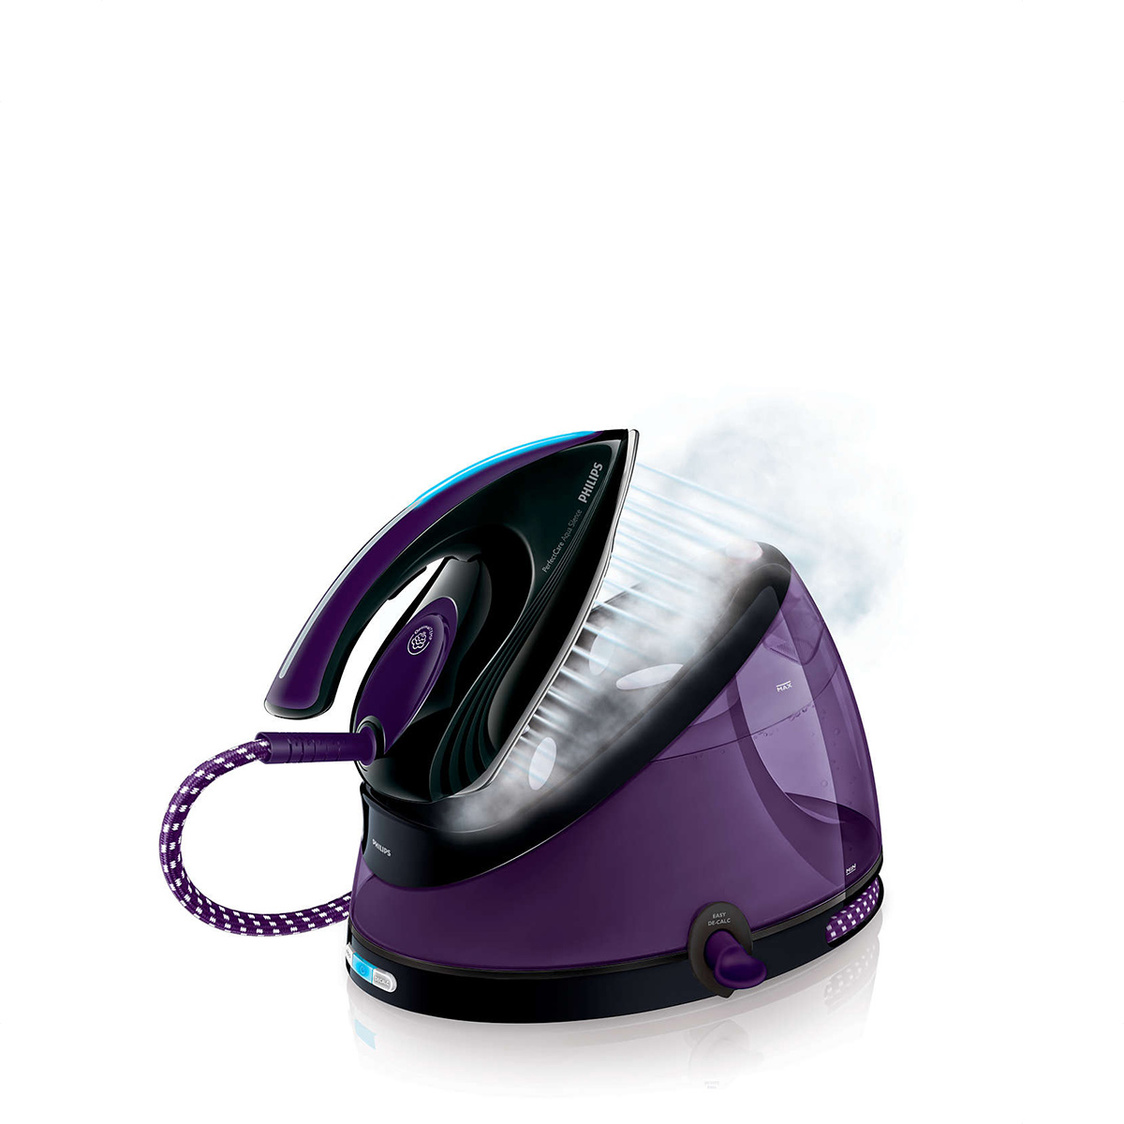 PerfectCare Aqua Silence Steam Generator Iron GC865080